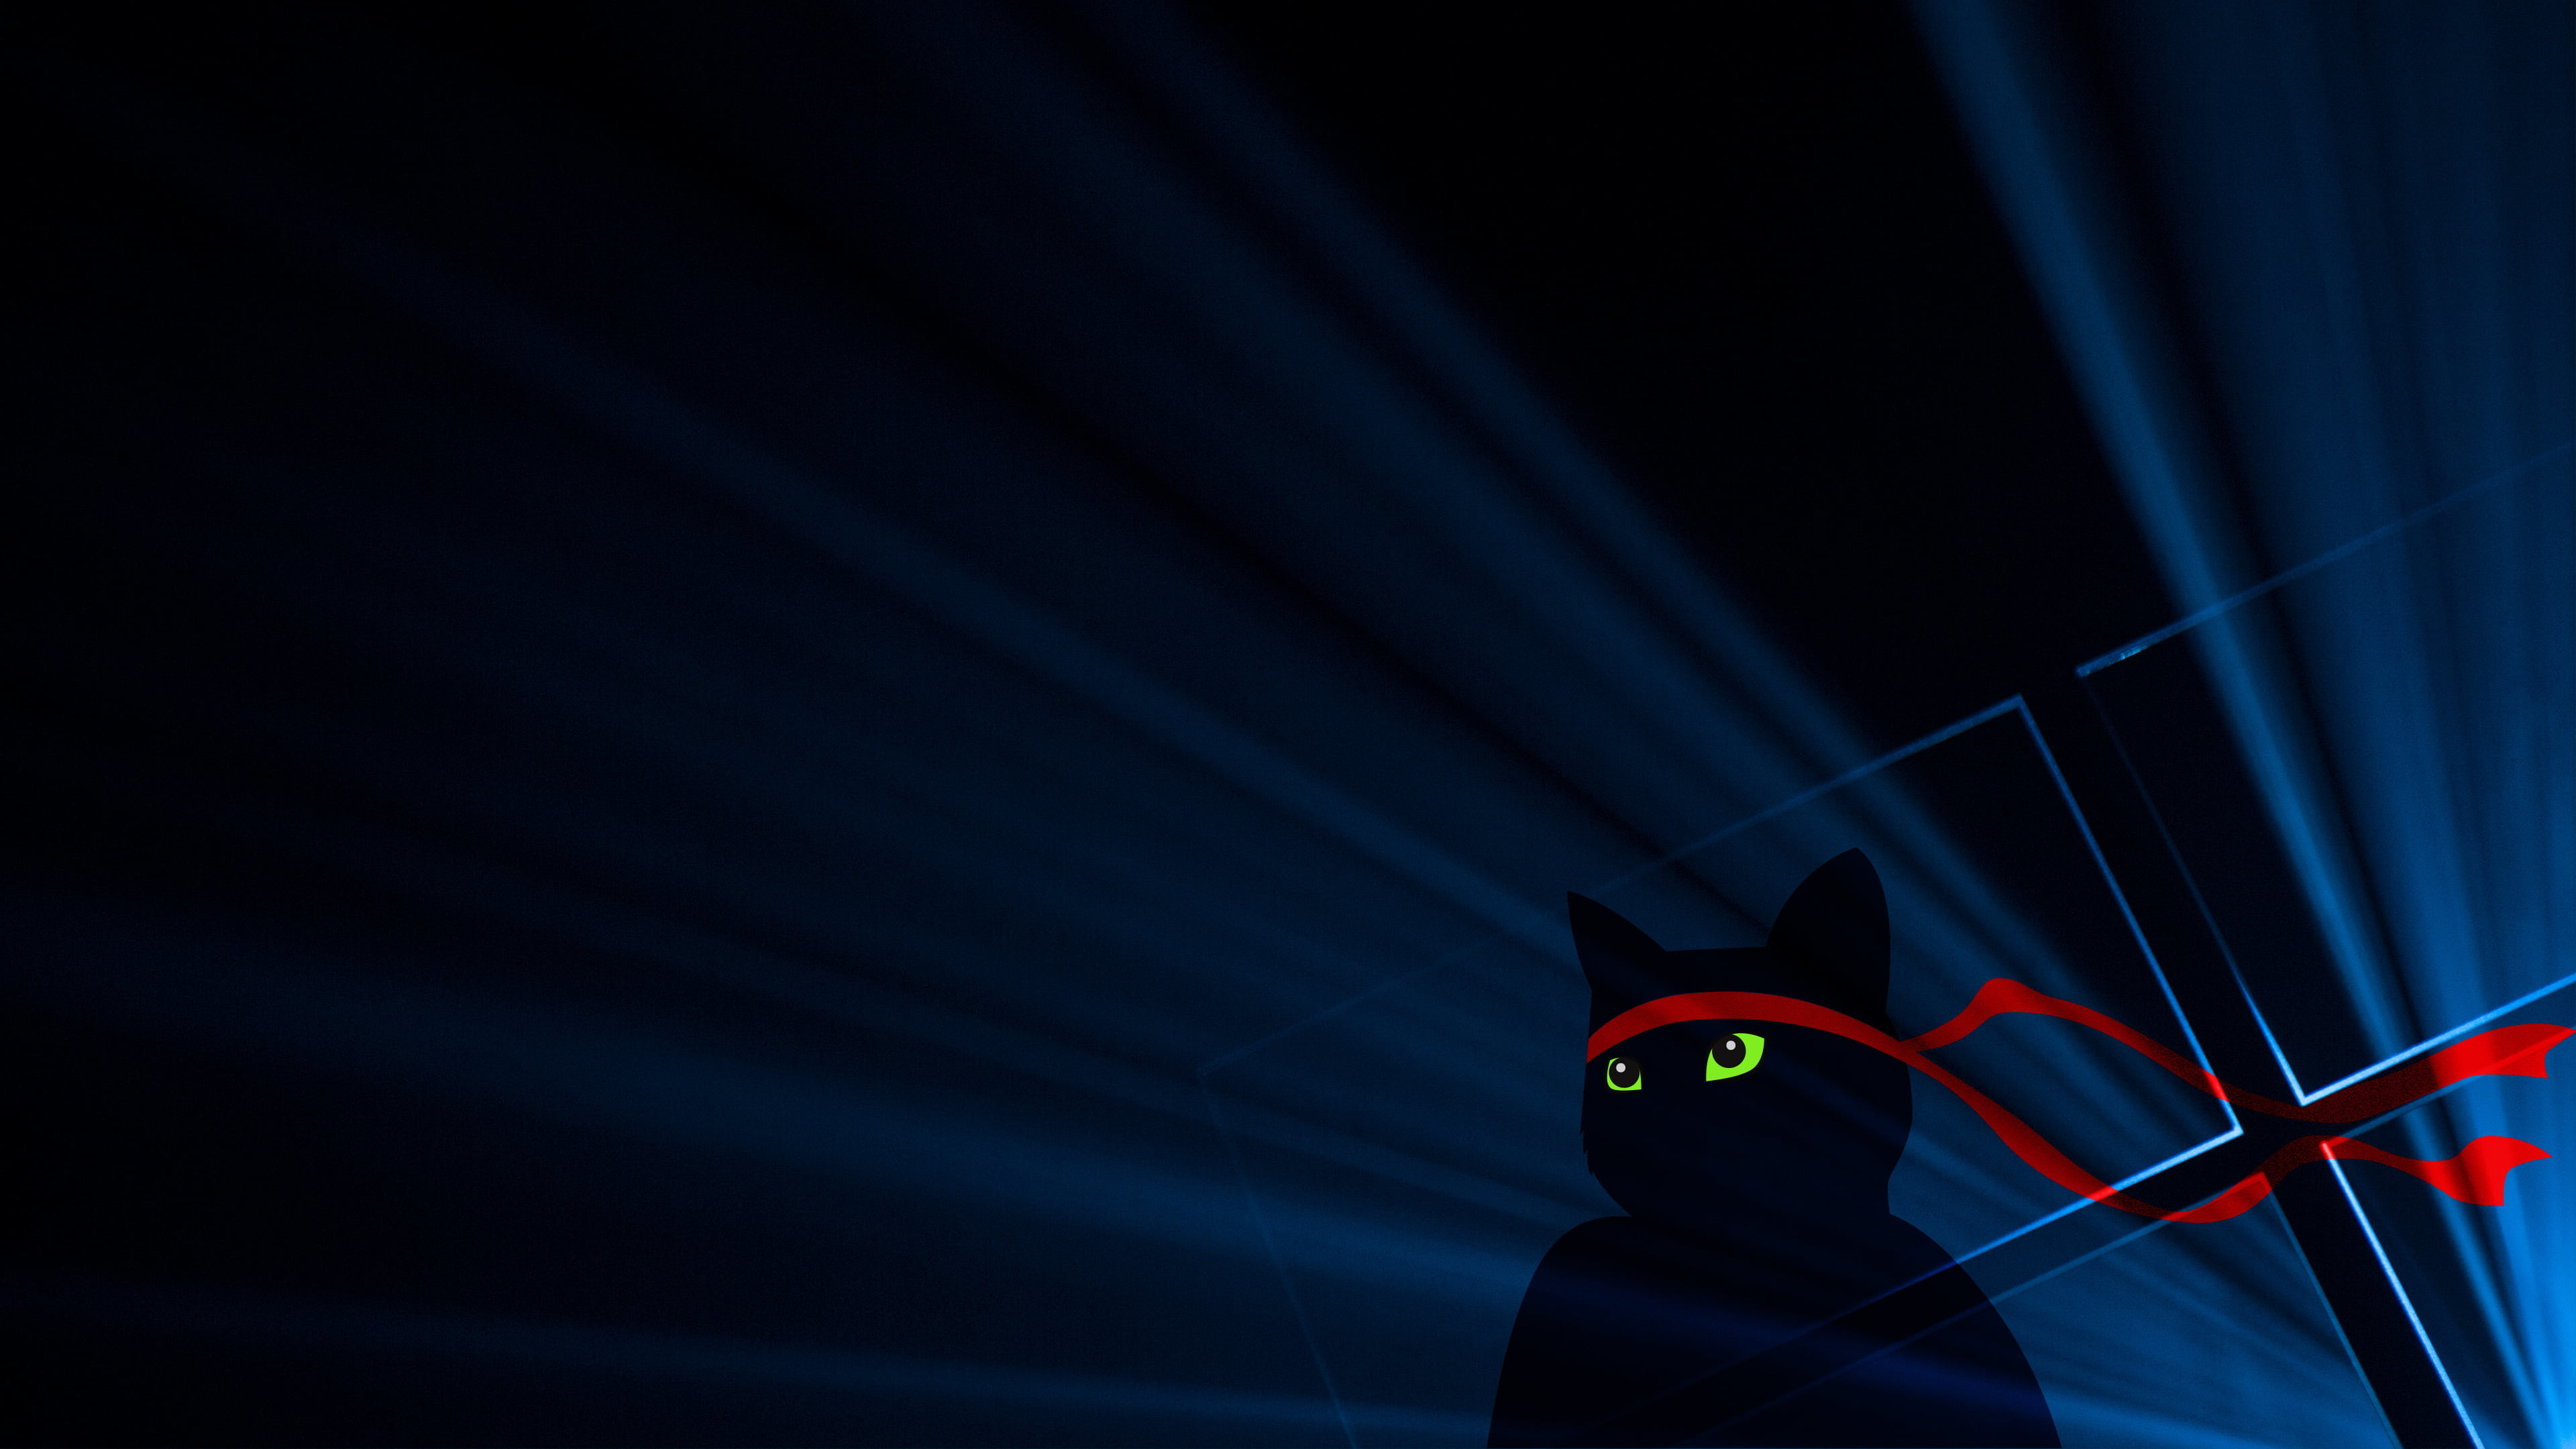 Res: 3840x2160, black cat with red bandana artwork HD wallpaper